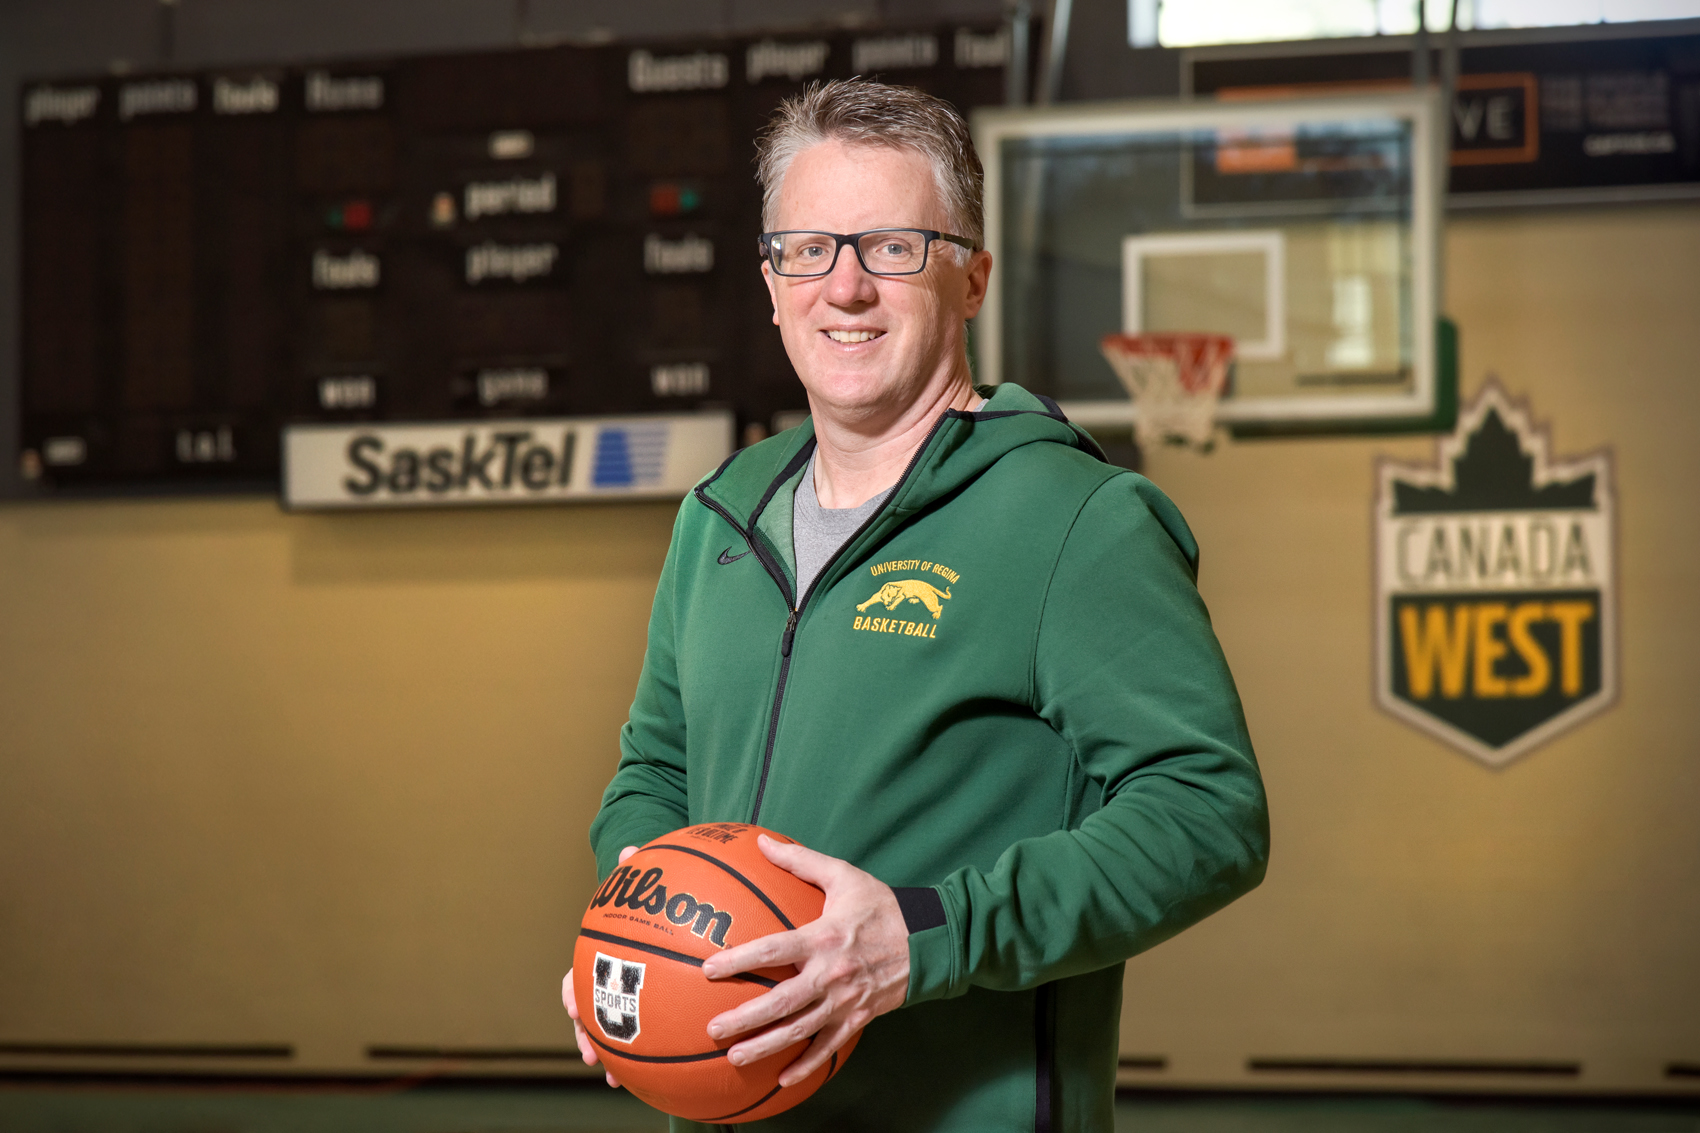 Dave Taylor, Cougars women's basketball head coach, had the pleasure of coaching Dobner for three and a half years.